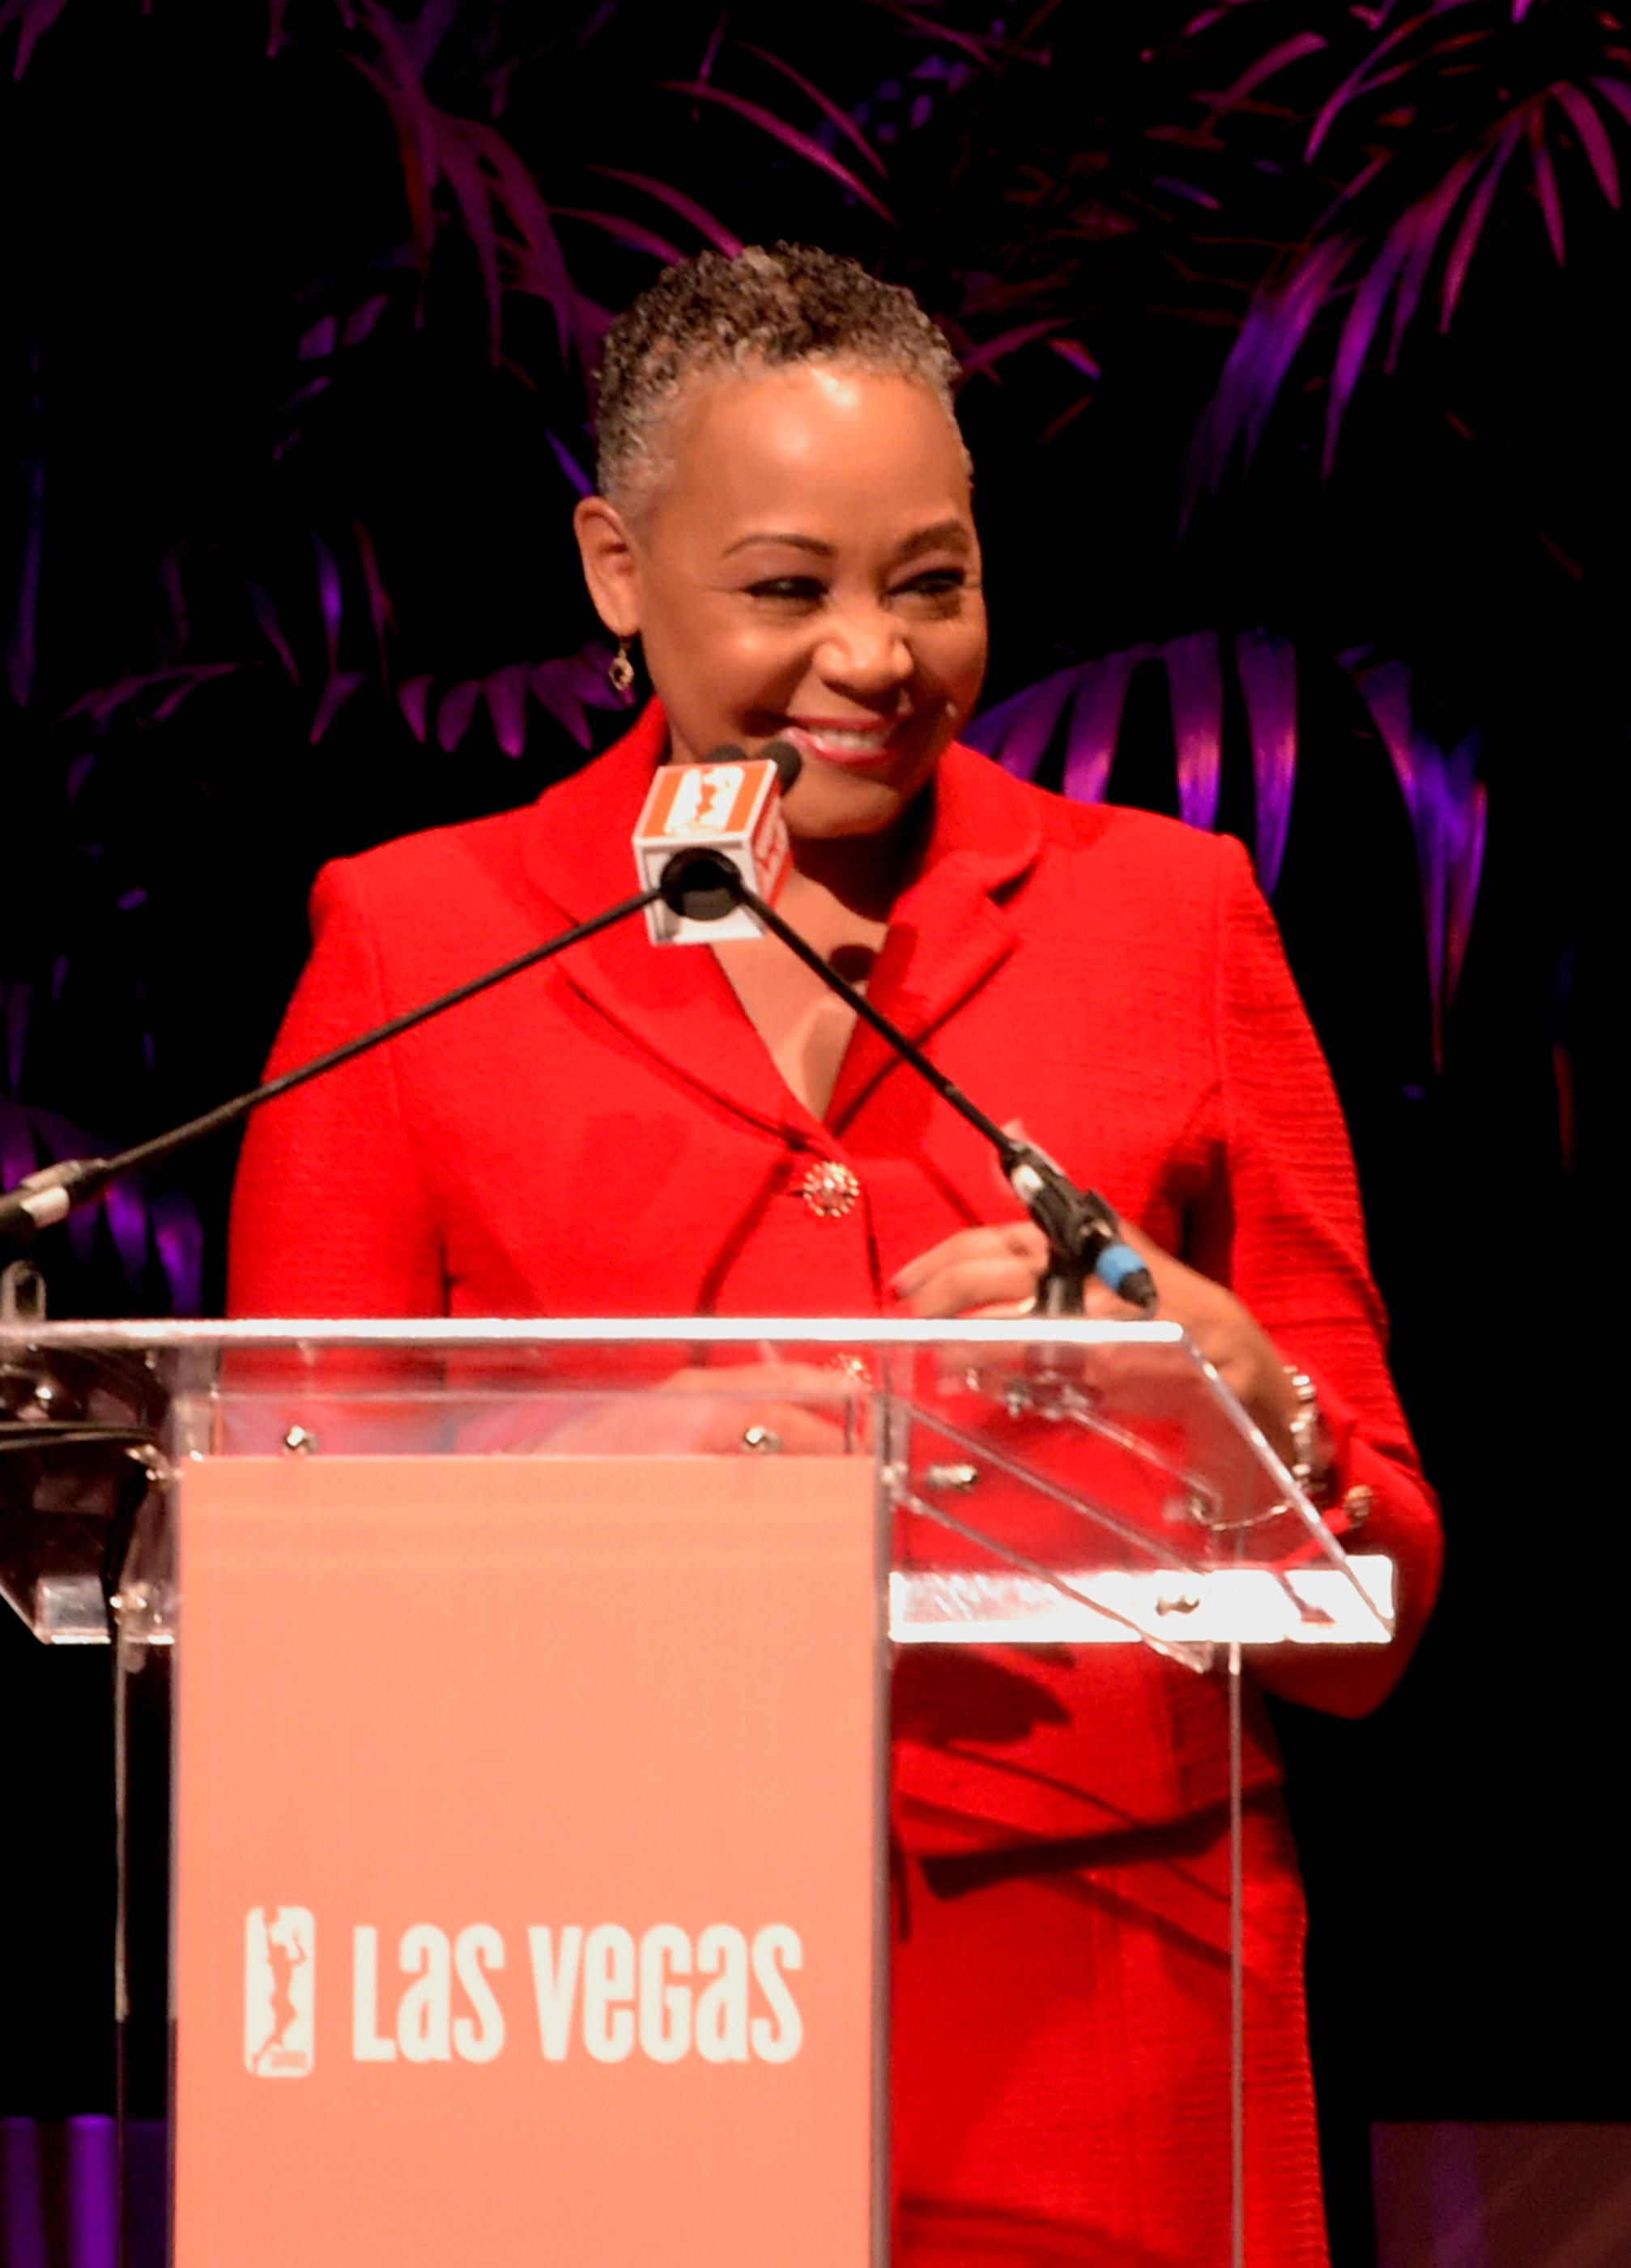 Lisa Borders President of the WNBA speaking at the press conference announcing the WNBA Las Vegas Aces as the newest professional sports franchise in Las Vegas at Mandalay Bay. Monday, December 11, 2017. CREDIT: Glenn Pinkerton/Las Vegas News Bureau